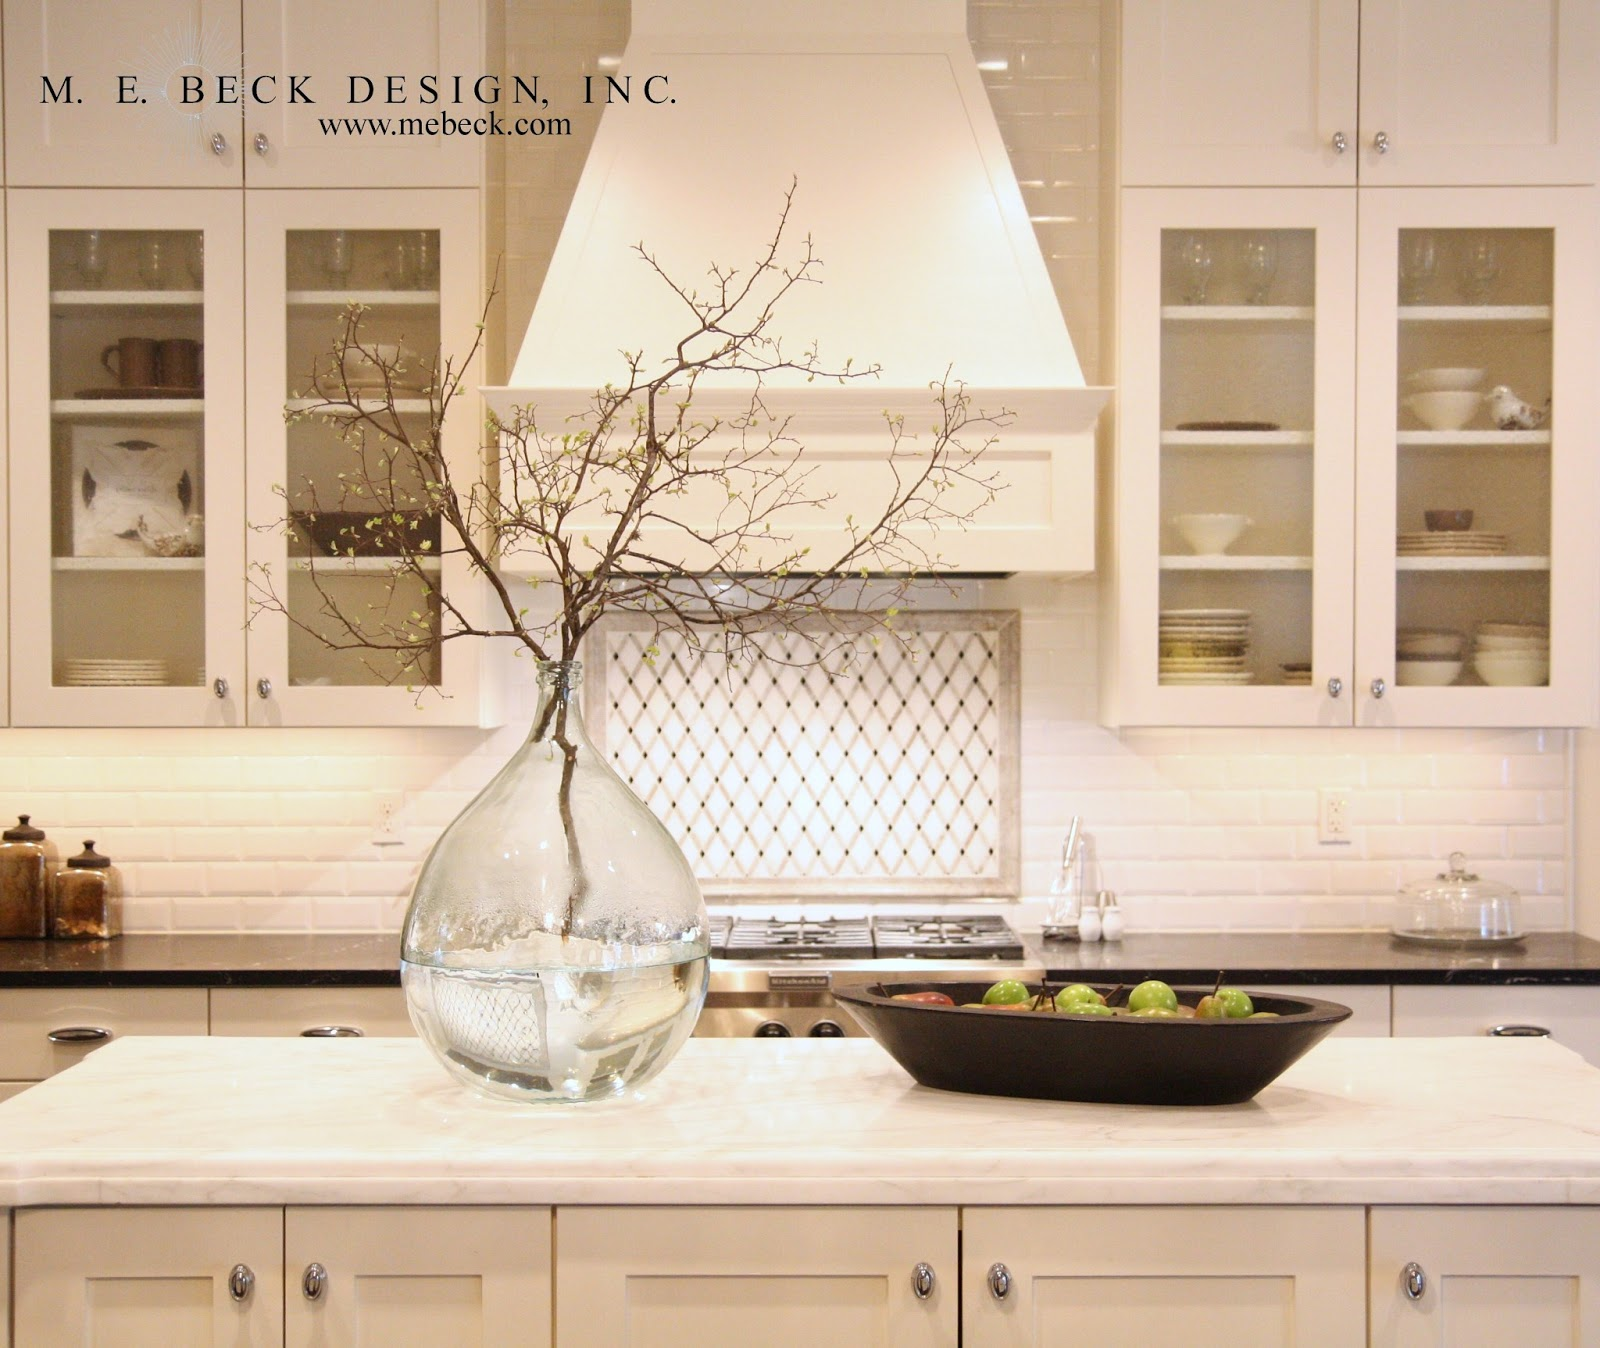 Marble Countertops Austin Live Beautifully Elegant In Austin Kitchen And Hearthroom